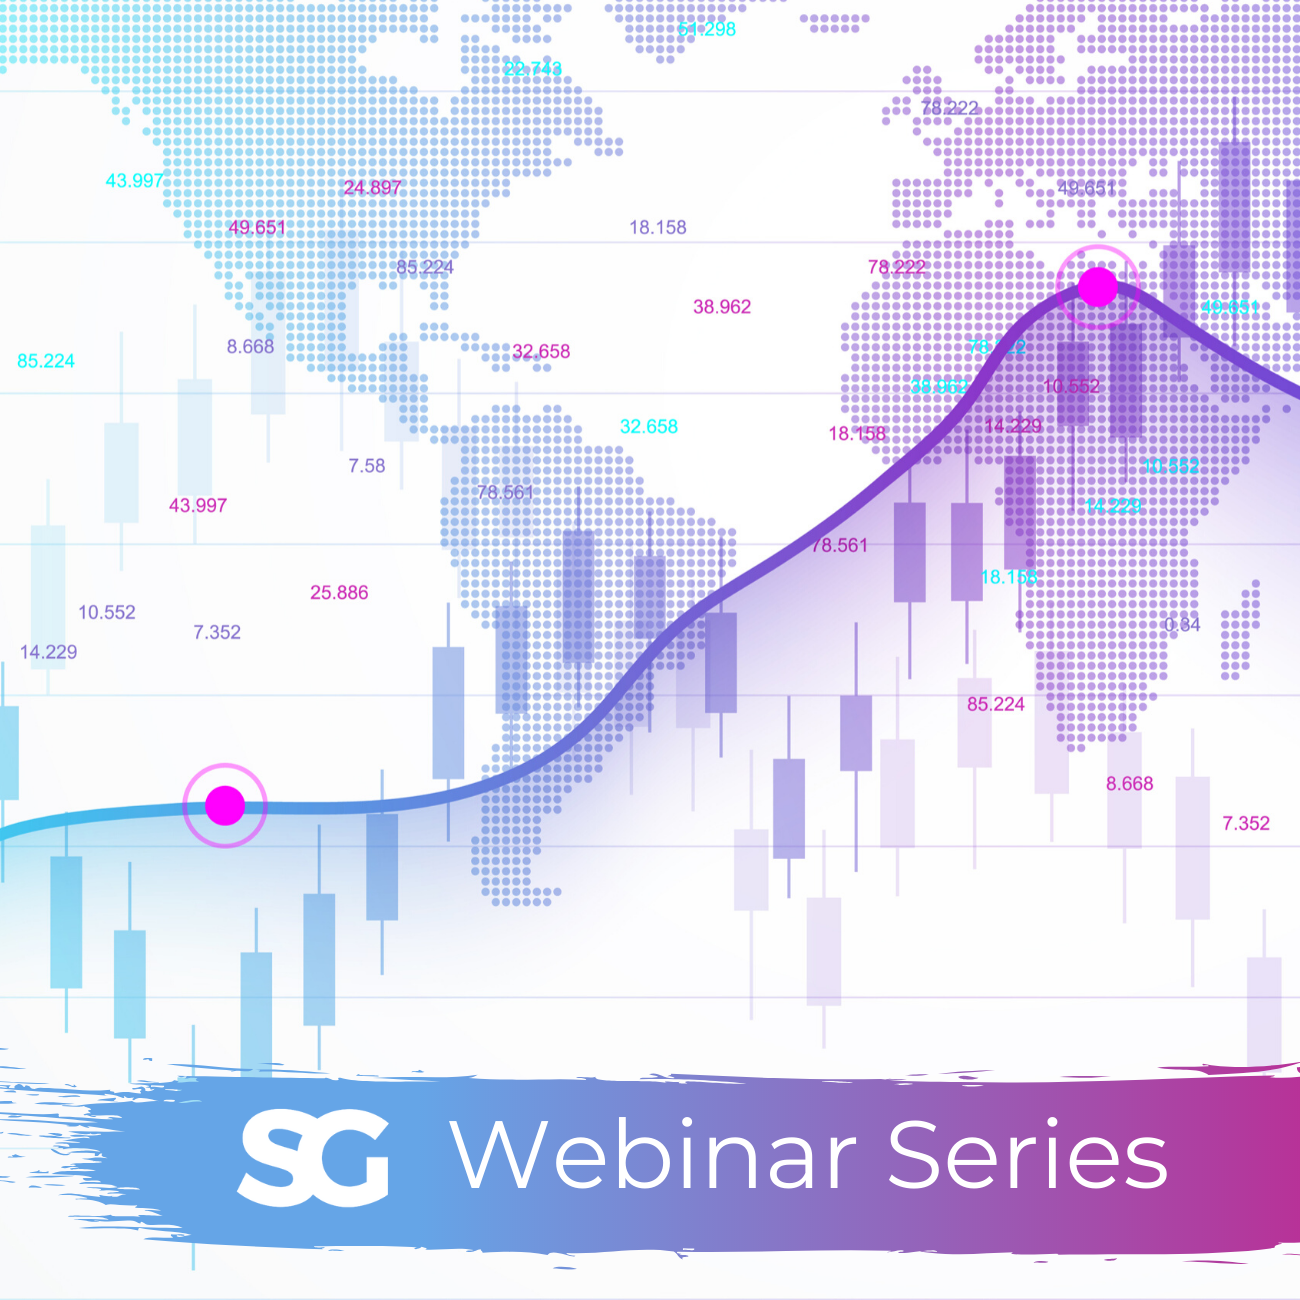 sq marketing webinar